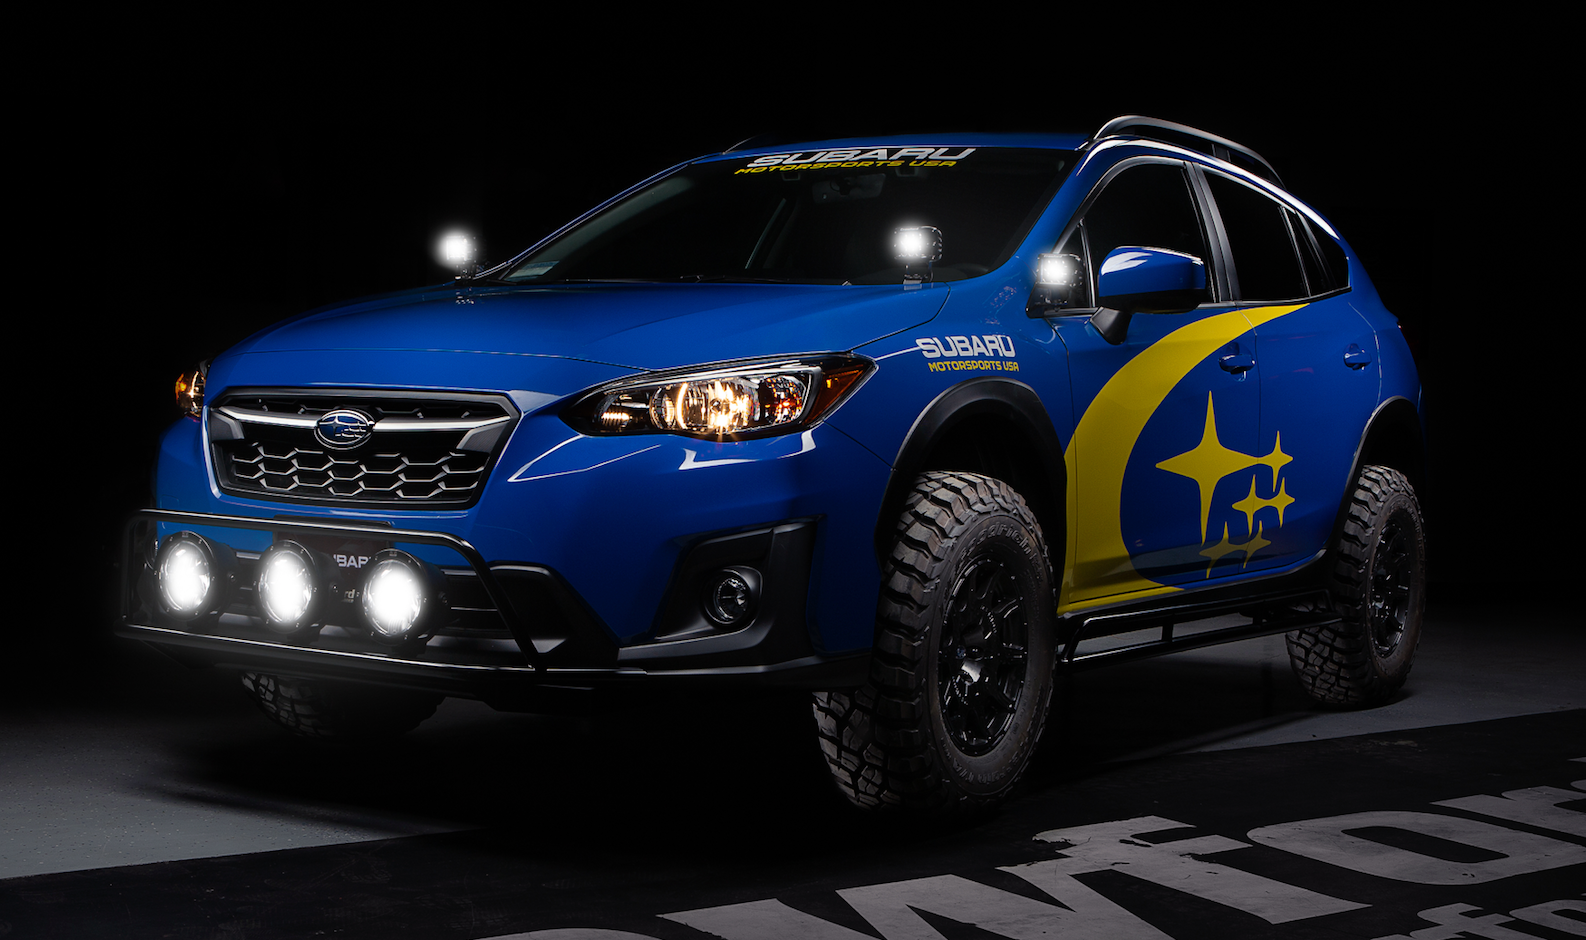 Crawford Performance Built Off-Road Subaru Crosstrek - Wiring Harnesses